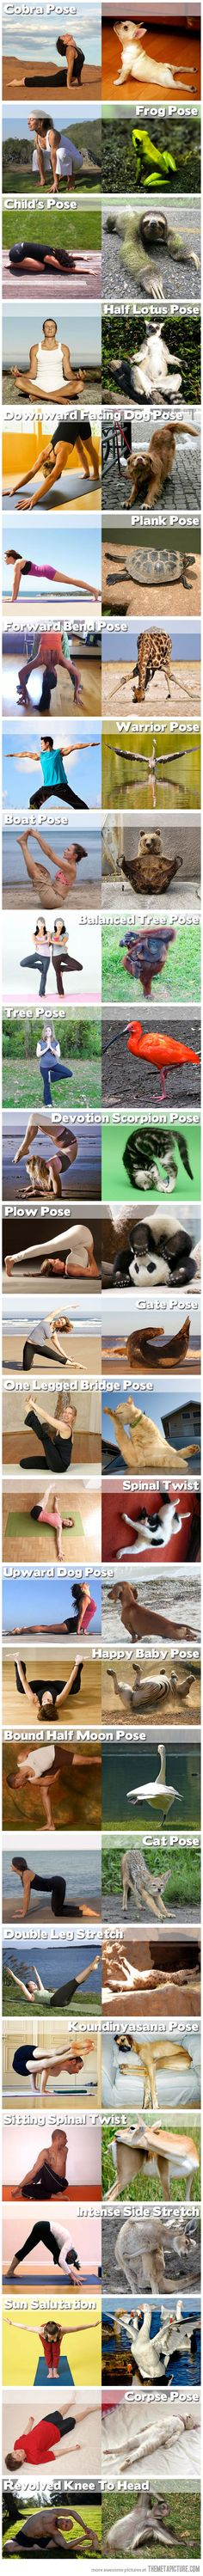 Not an app, but cute! The Animal Guide to Yoga - too cute may have to use for visuals for yoga